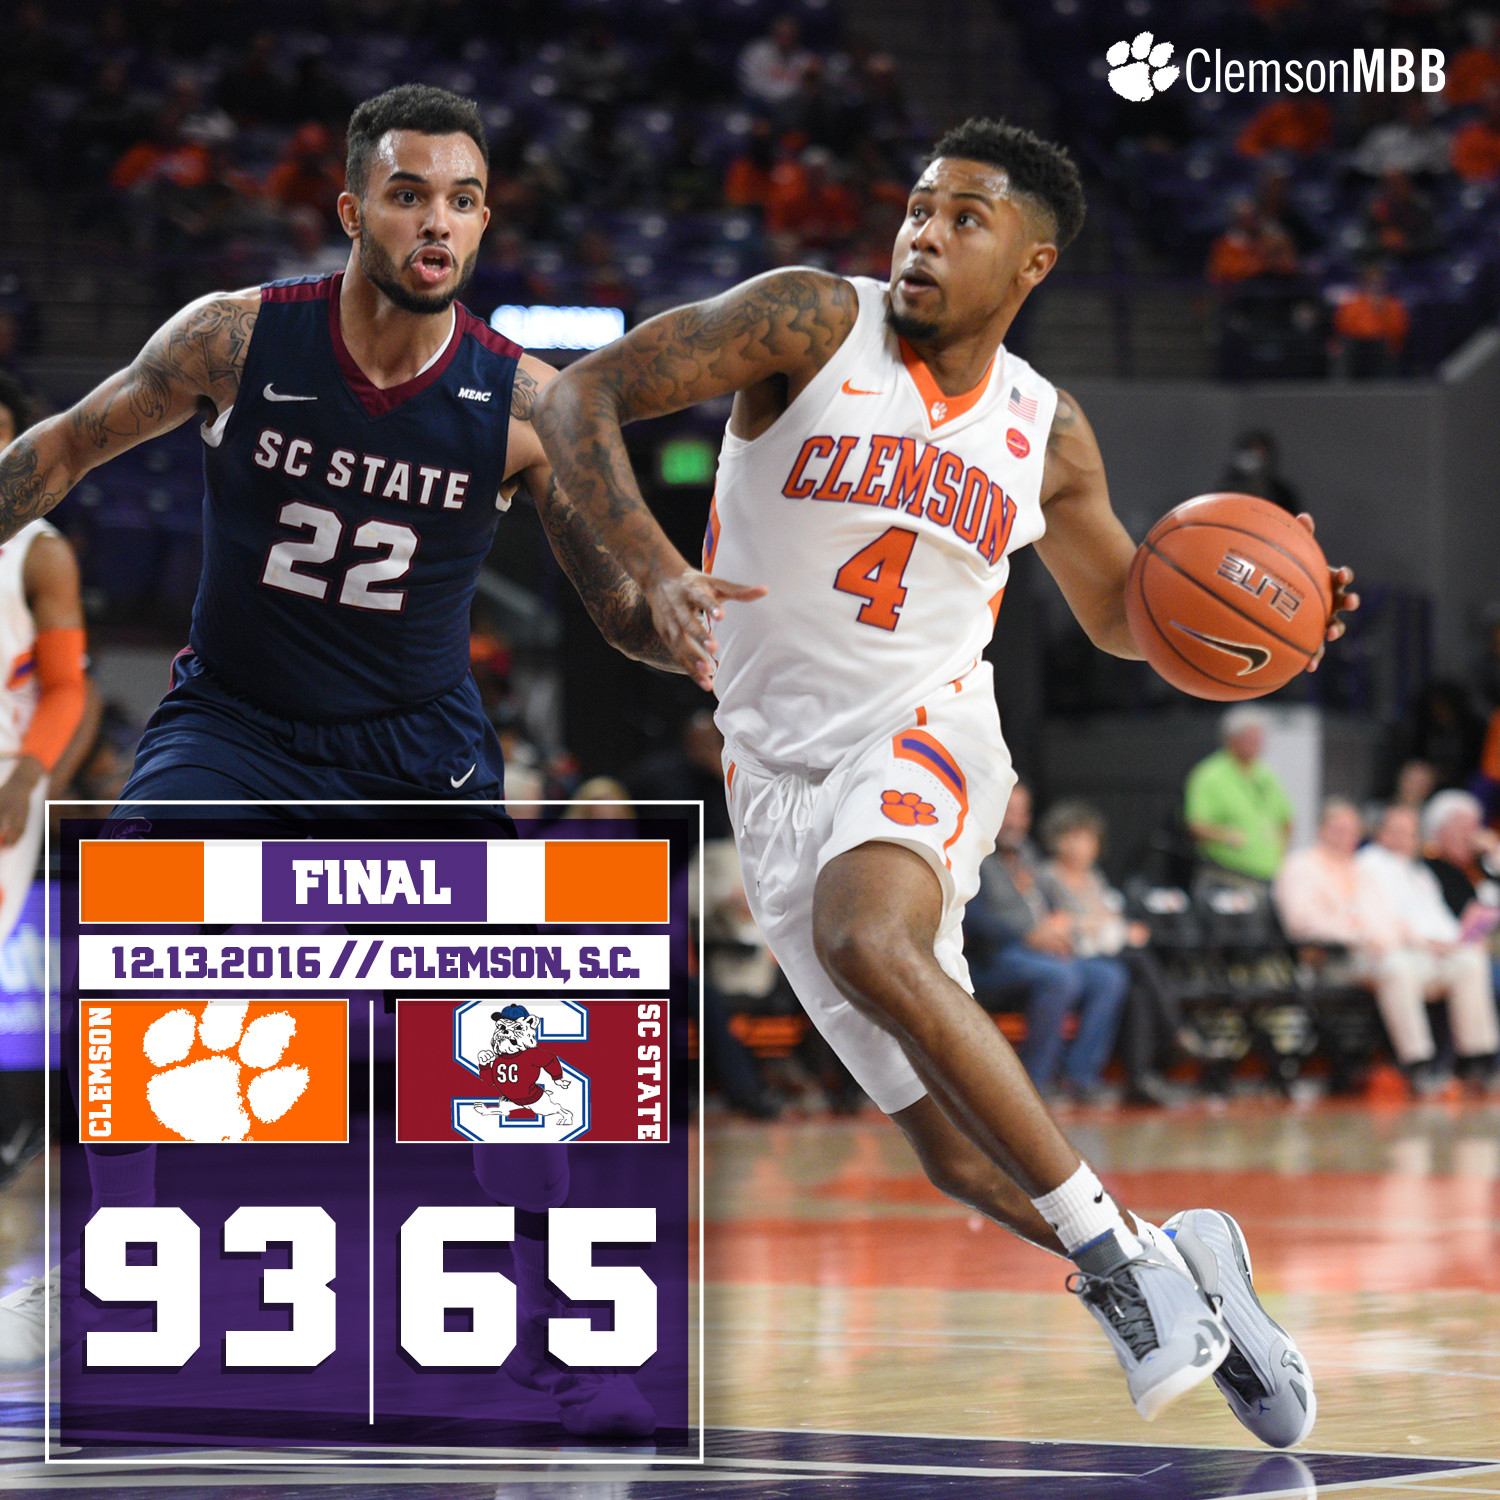 Tigers Ease Past SC State, 93-65